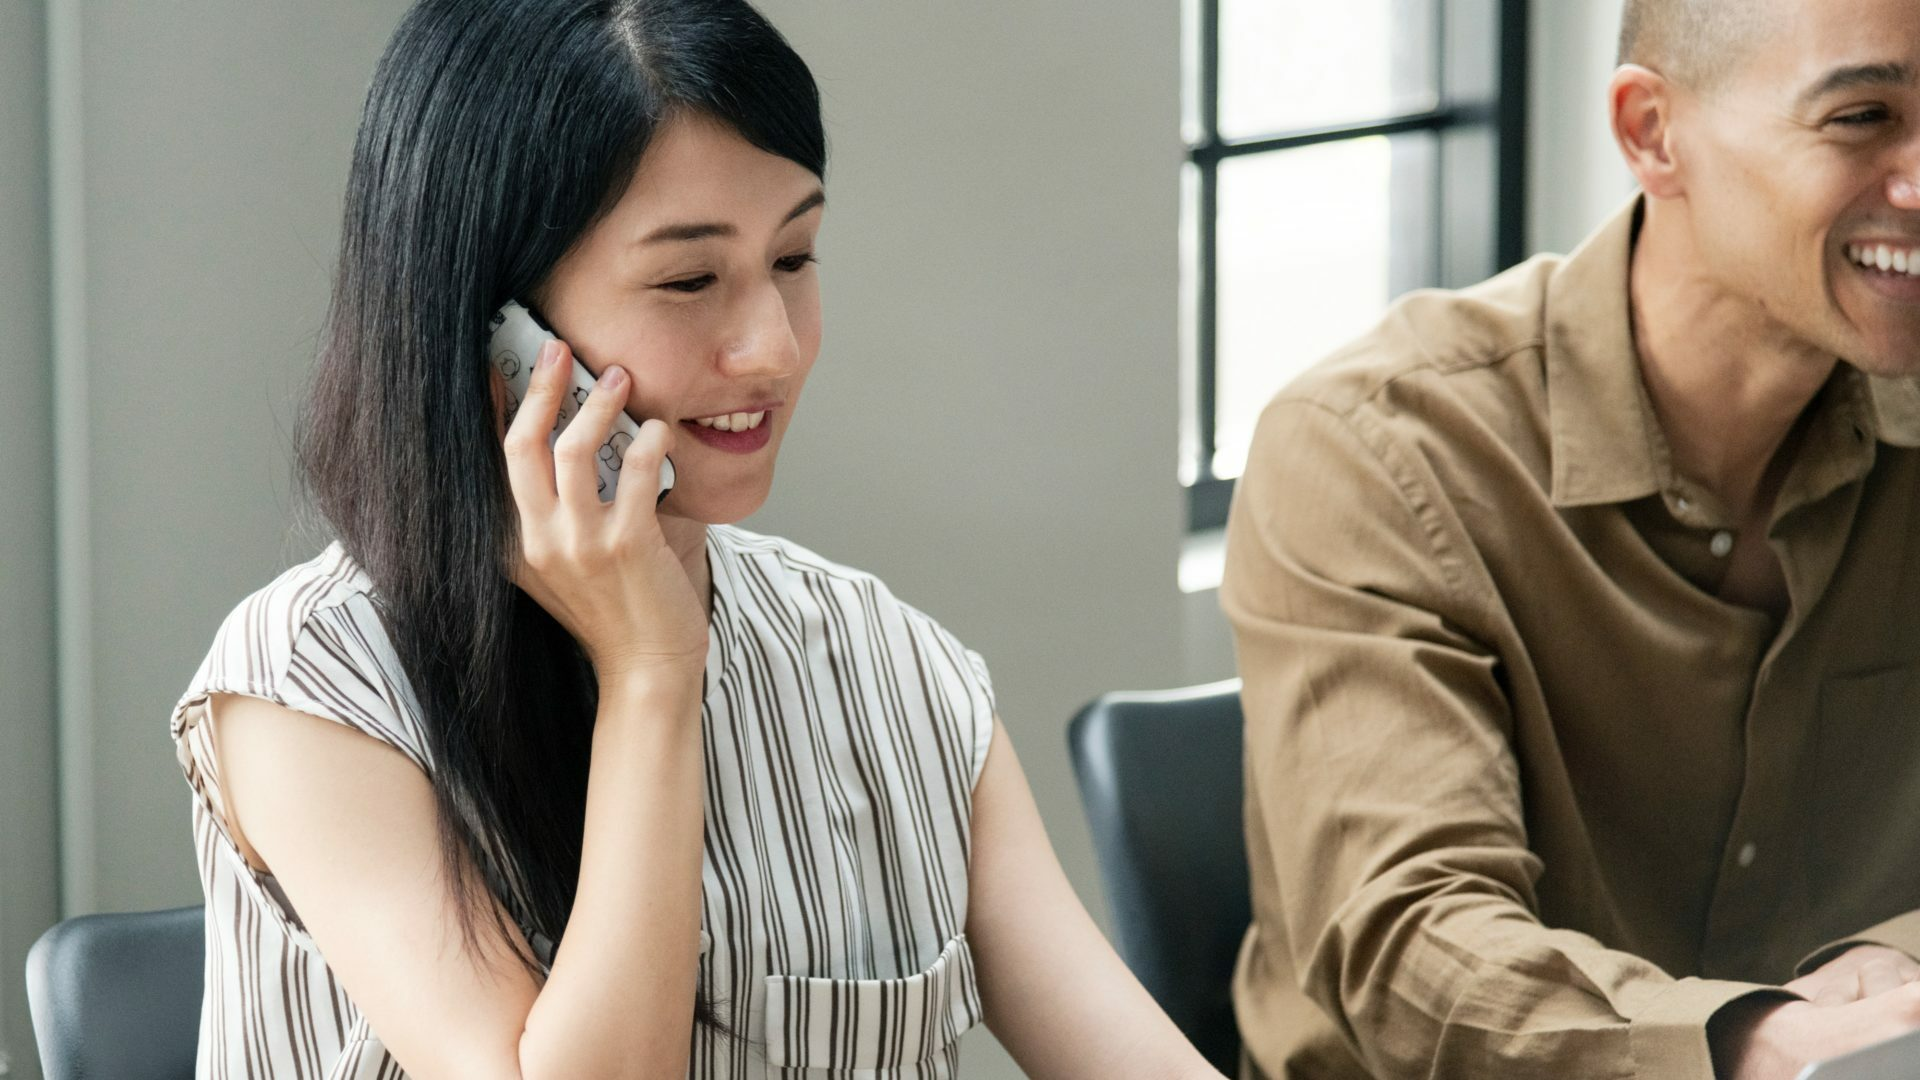 Is a Customer Service Career with Arise Legit?